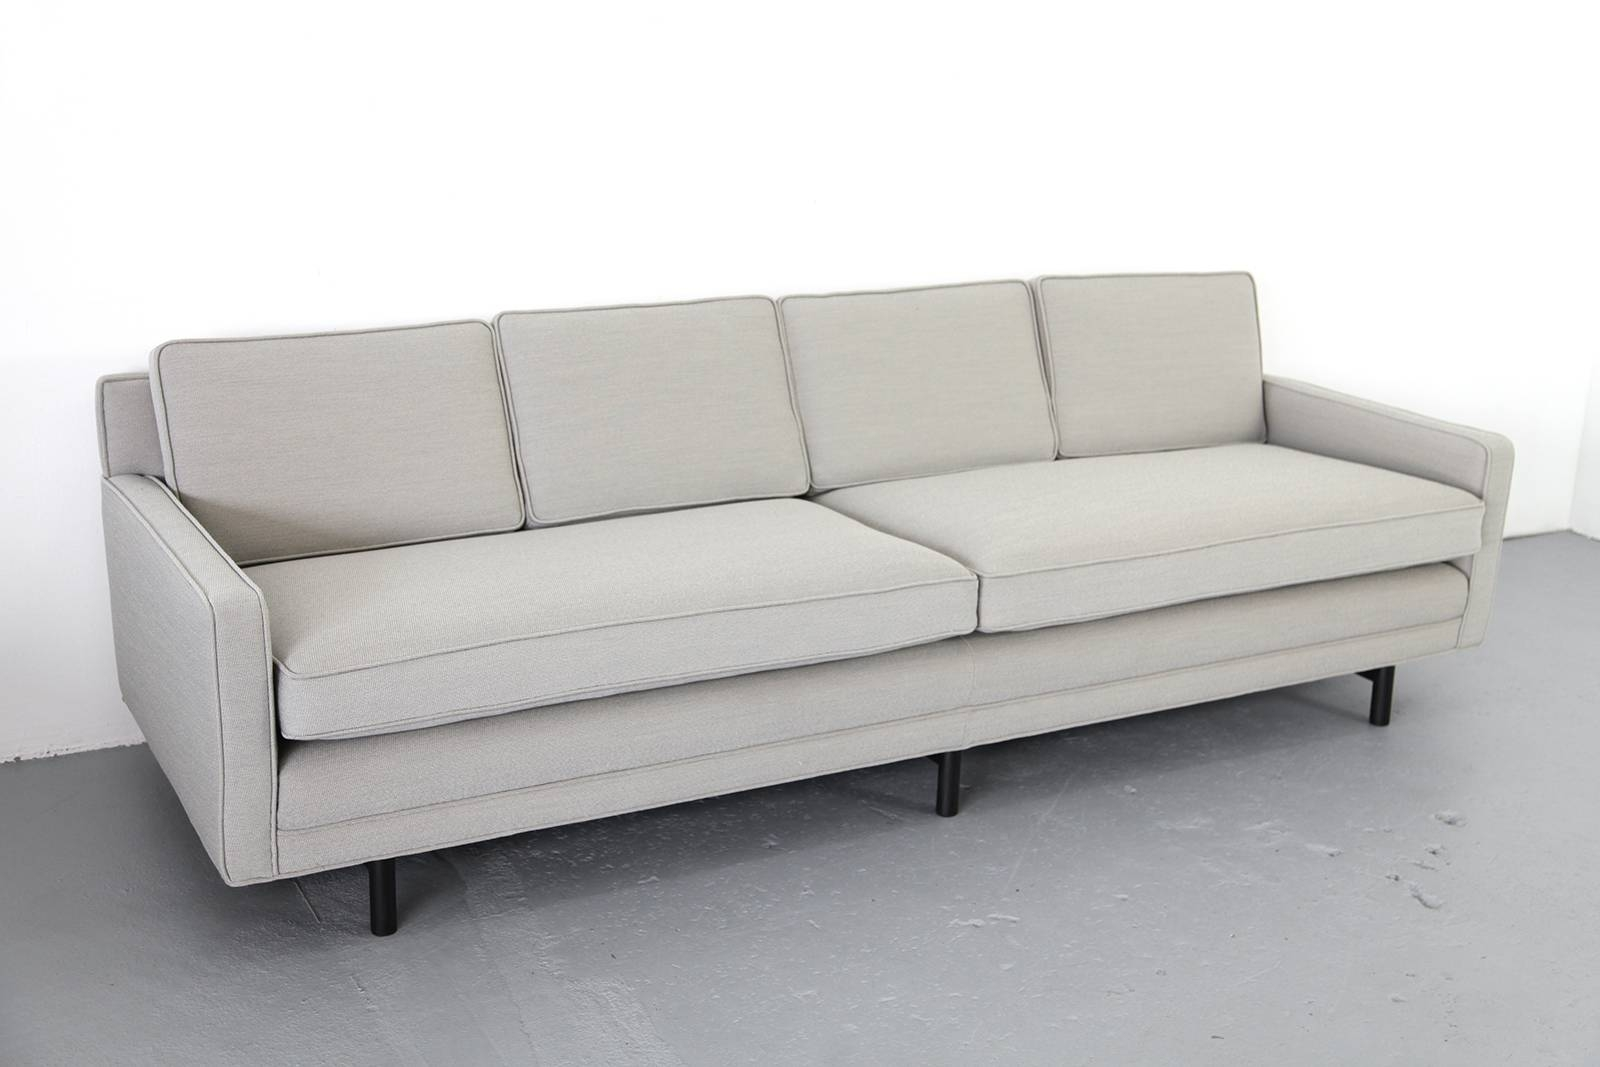 4-Seater Sofapaul Mccobb For Directional For Sale At Pamono intended for Large 4 Seater Sofas (Image 2 of 30)